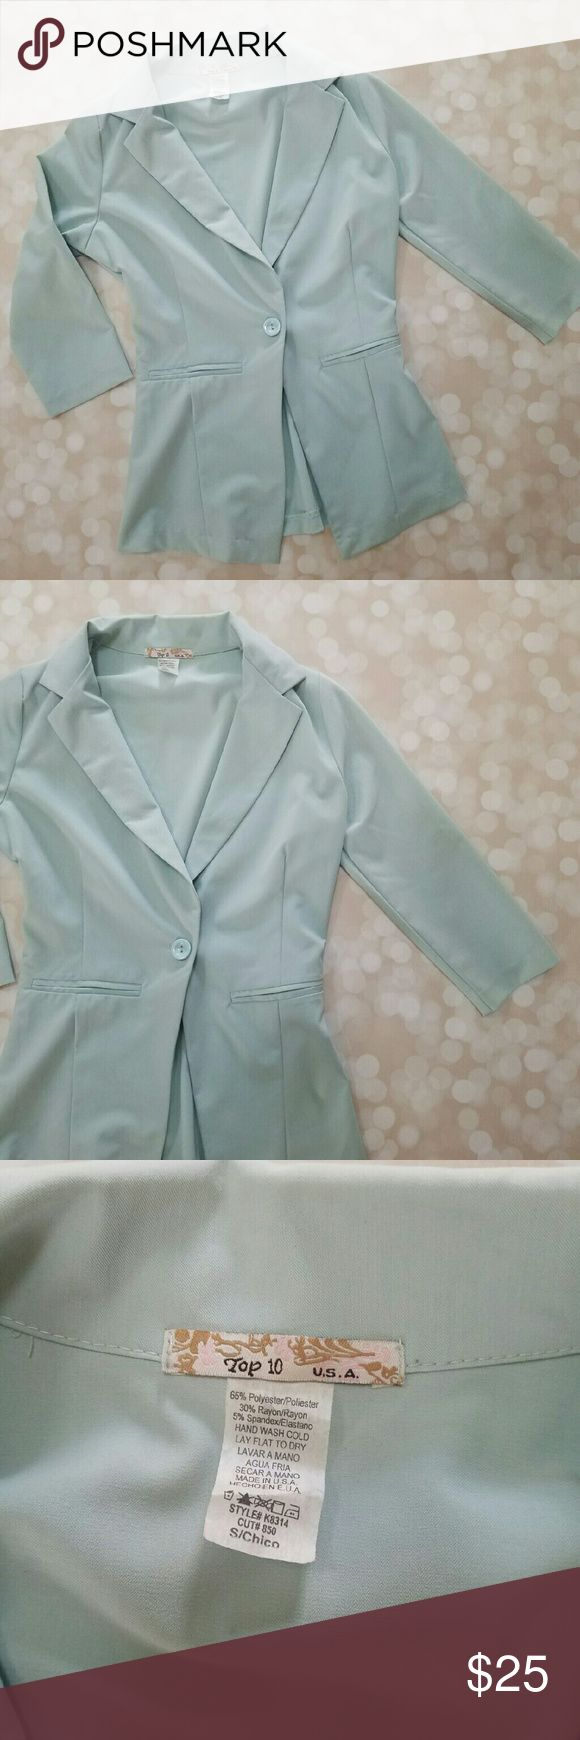 Light Mint Blazer Purchased pre-owned from someone else online.  Excellent condition. Decided not to keep. Jackets & Coats Blazers